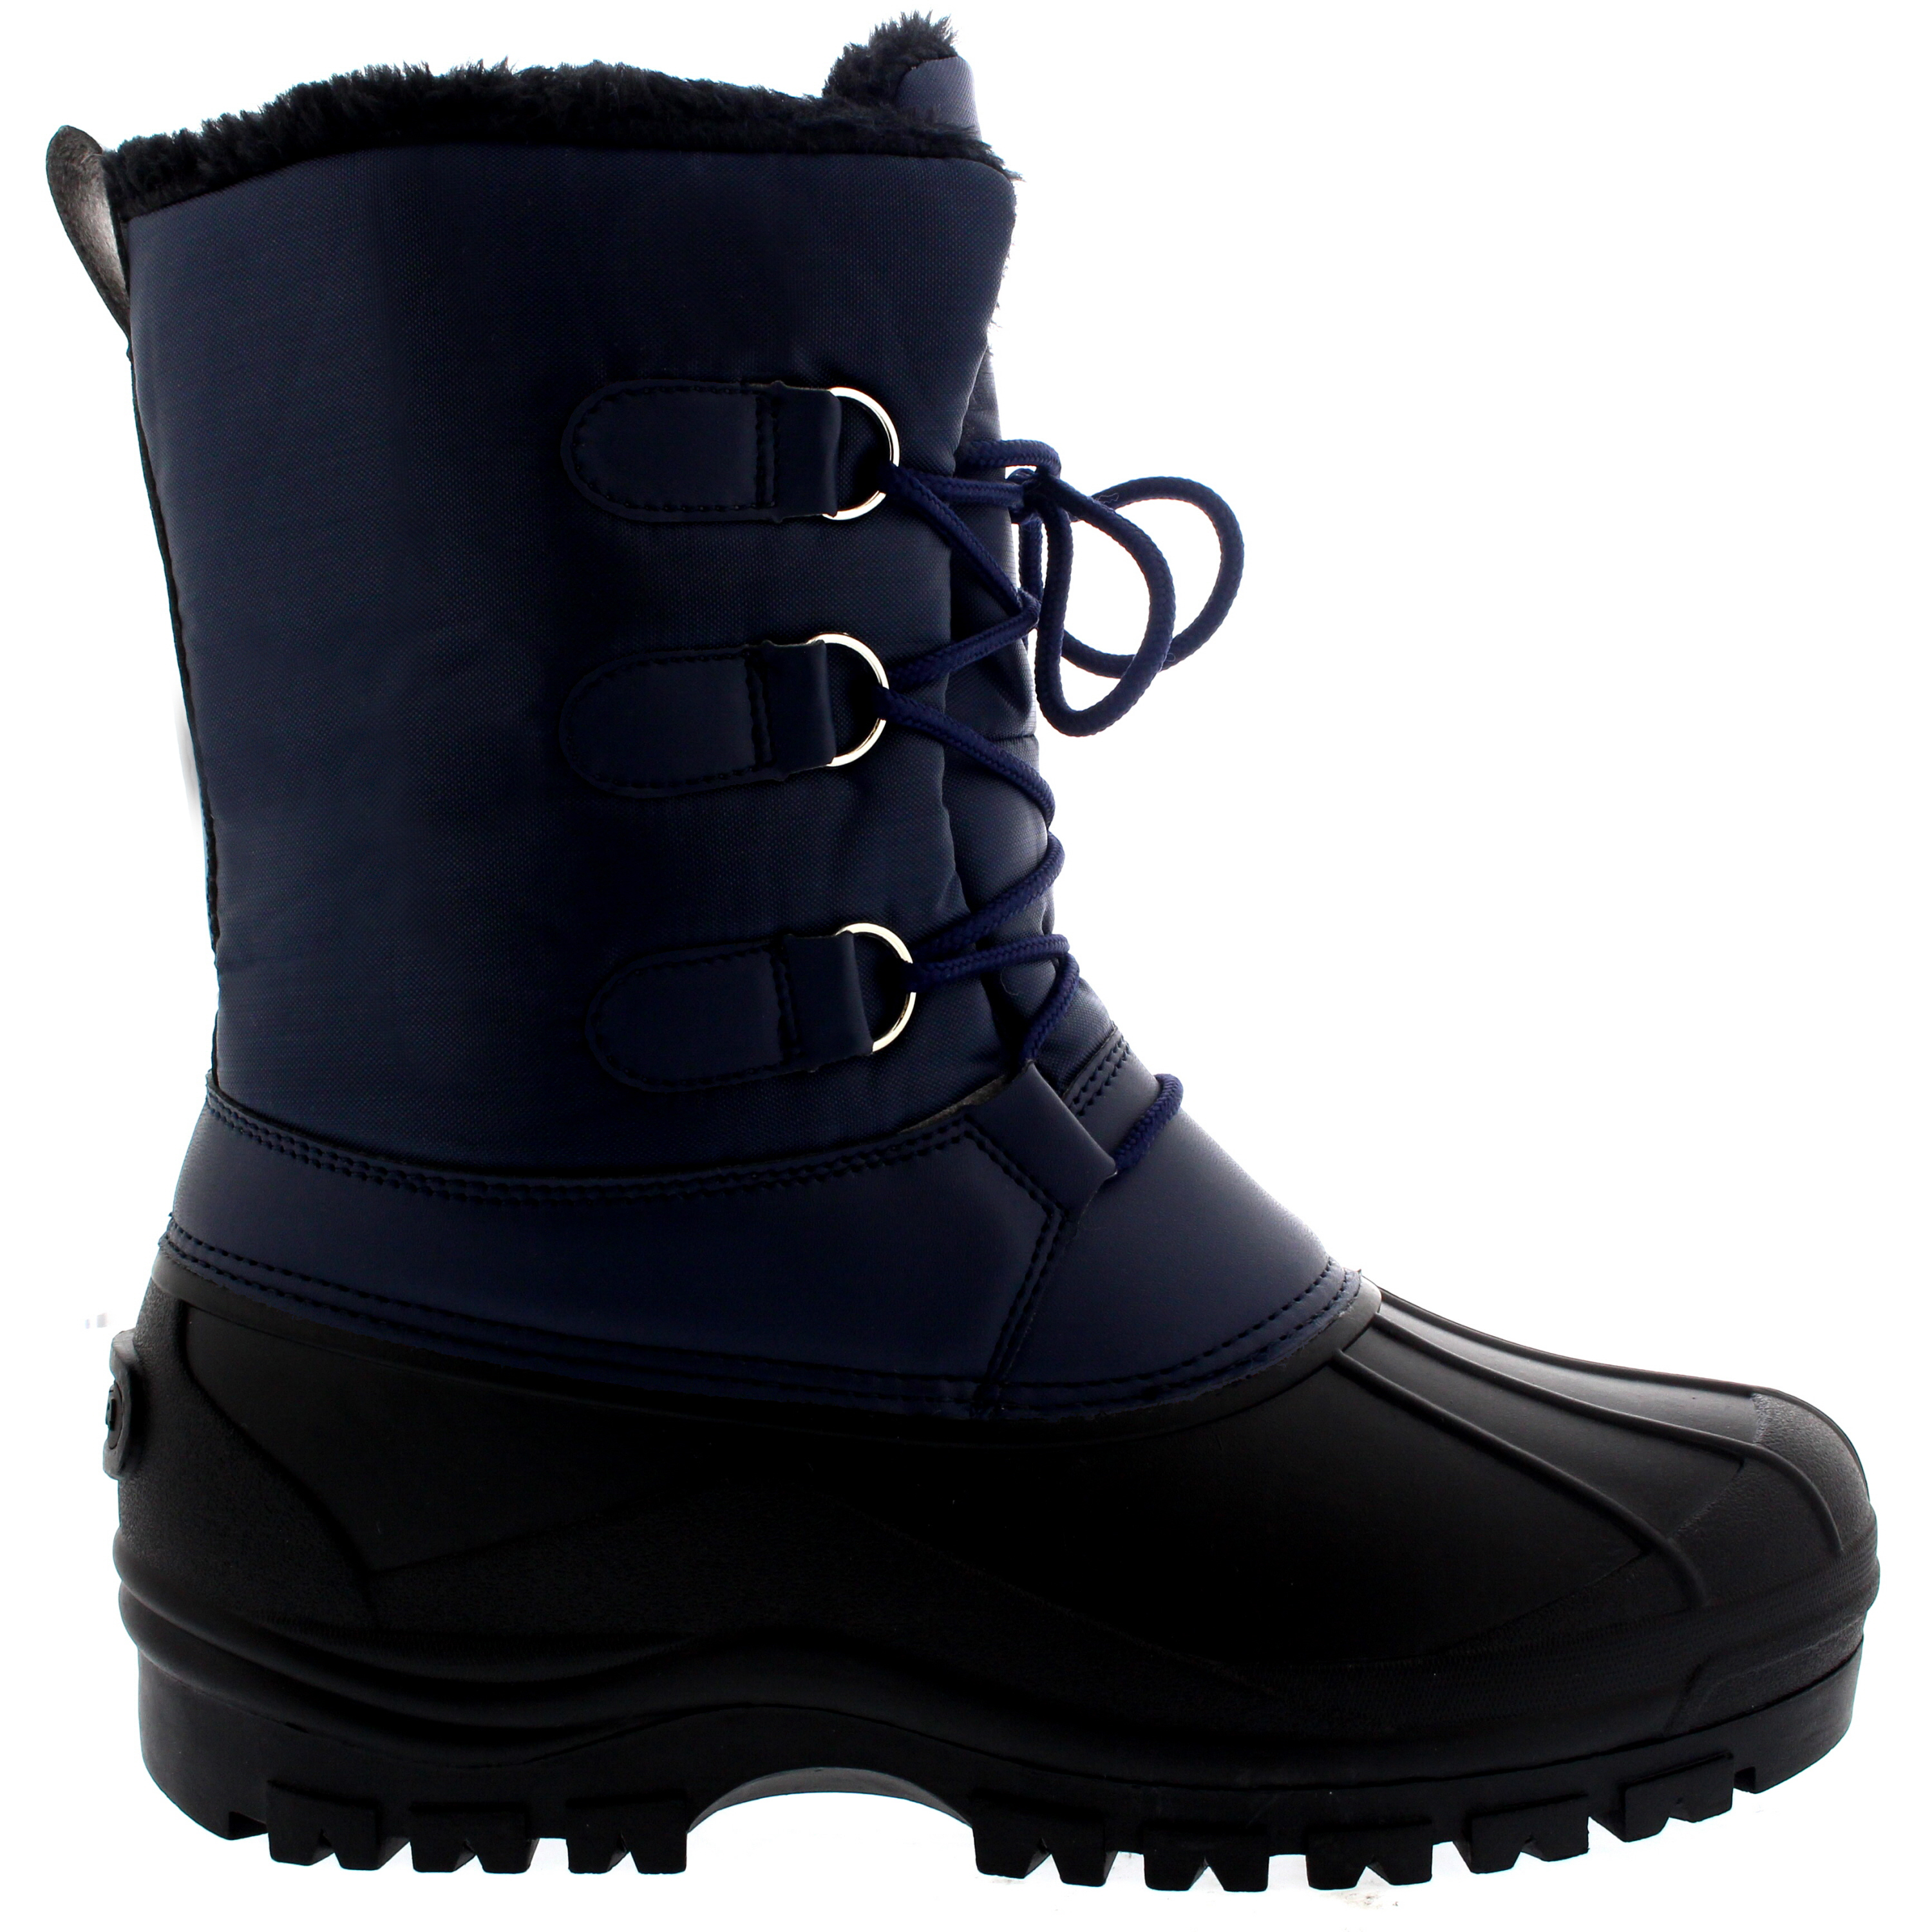 mens short nylon muck lace up snow rain casual duck warm winter boots all sizes ebay. Black Bedroom Furniture Sets. Home Design Ideas